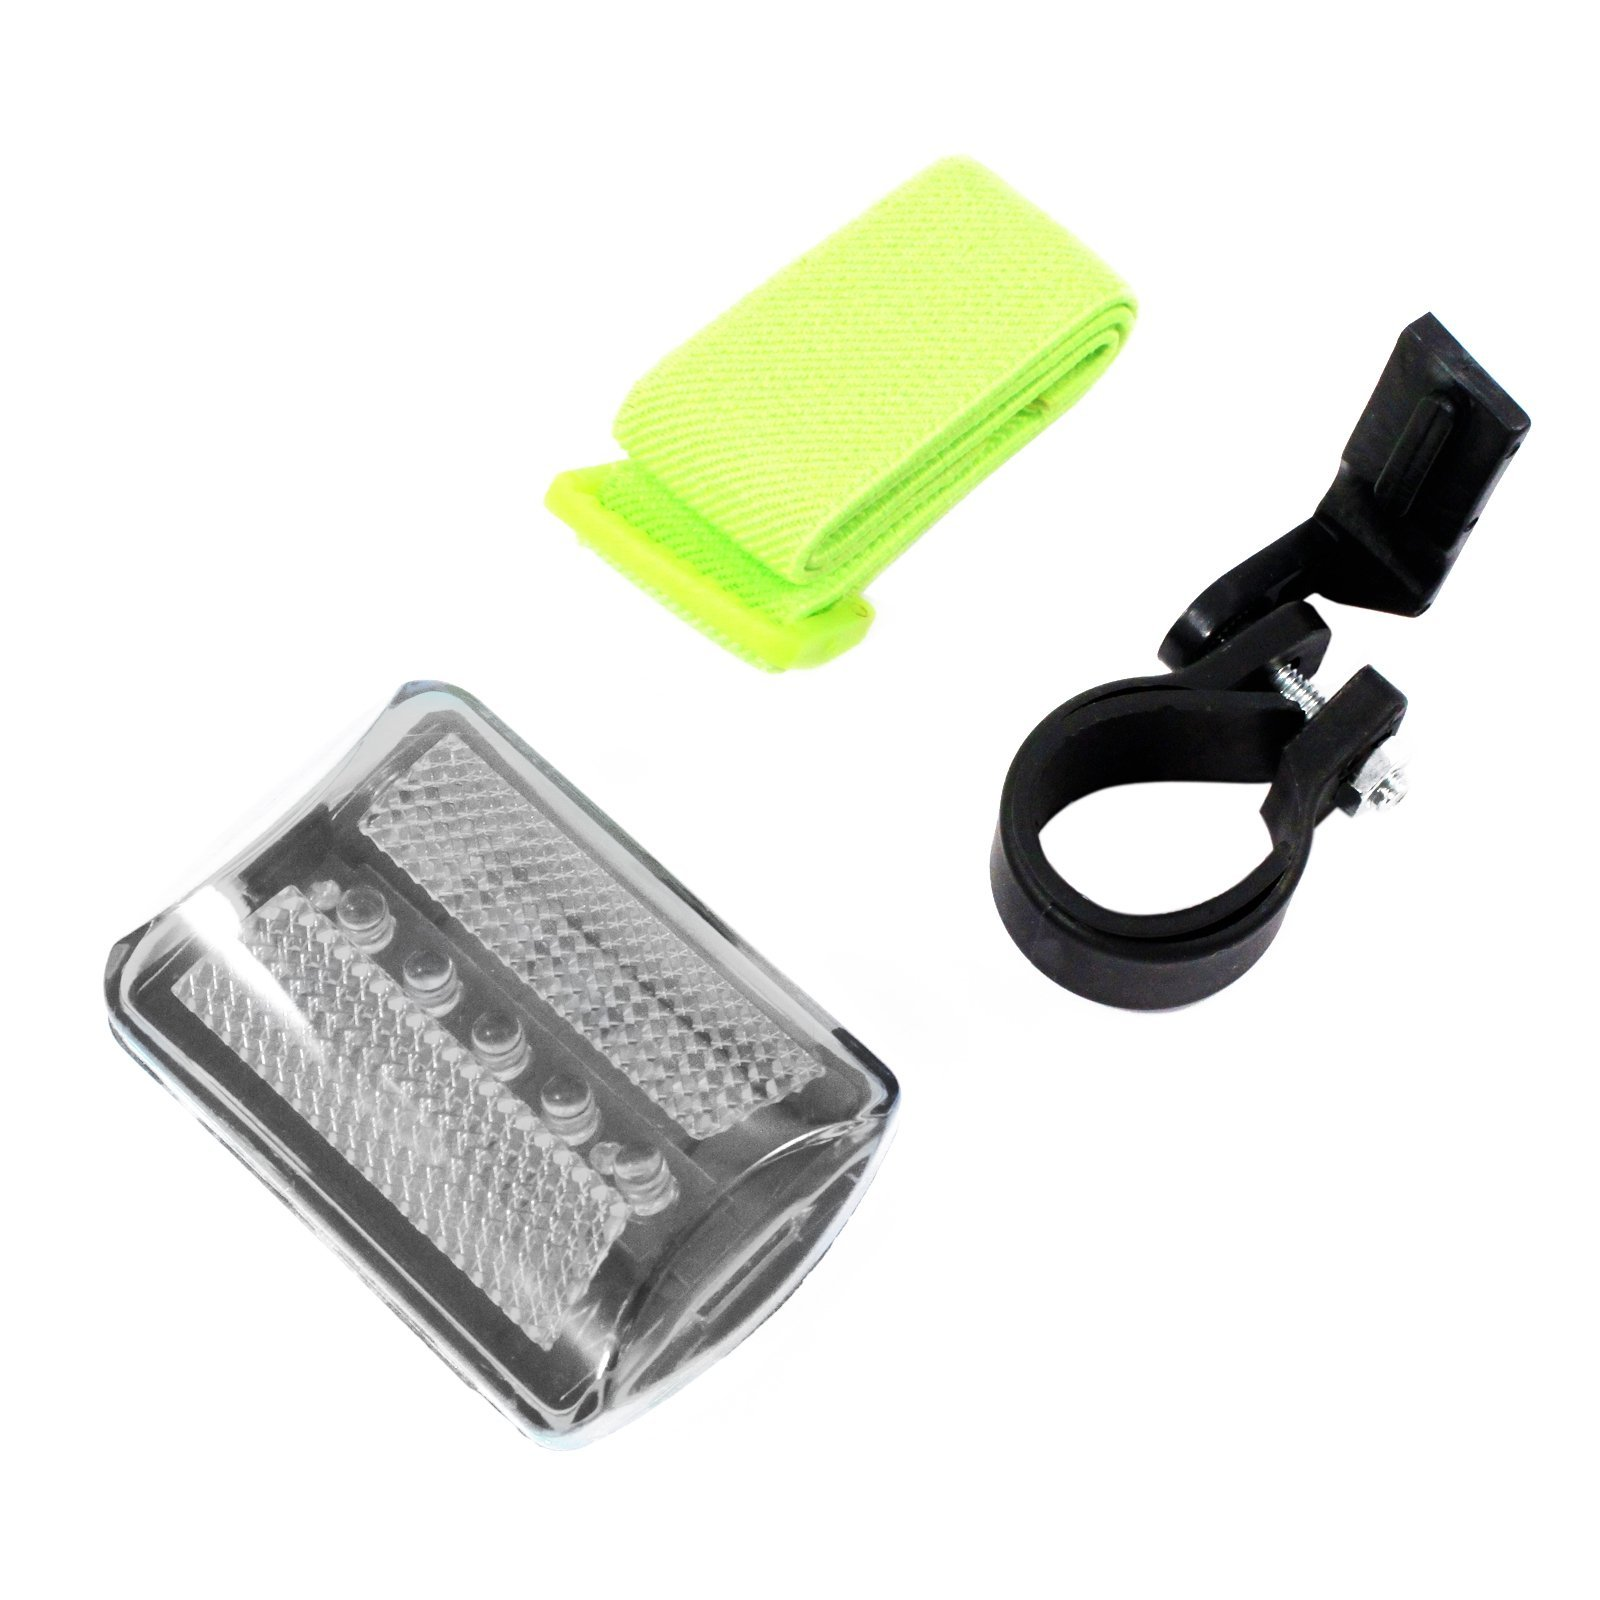 7 Function 5 LED White Safety Flasher with Strap and Bike Attachment